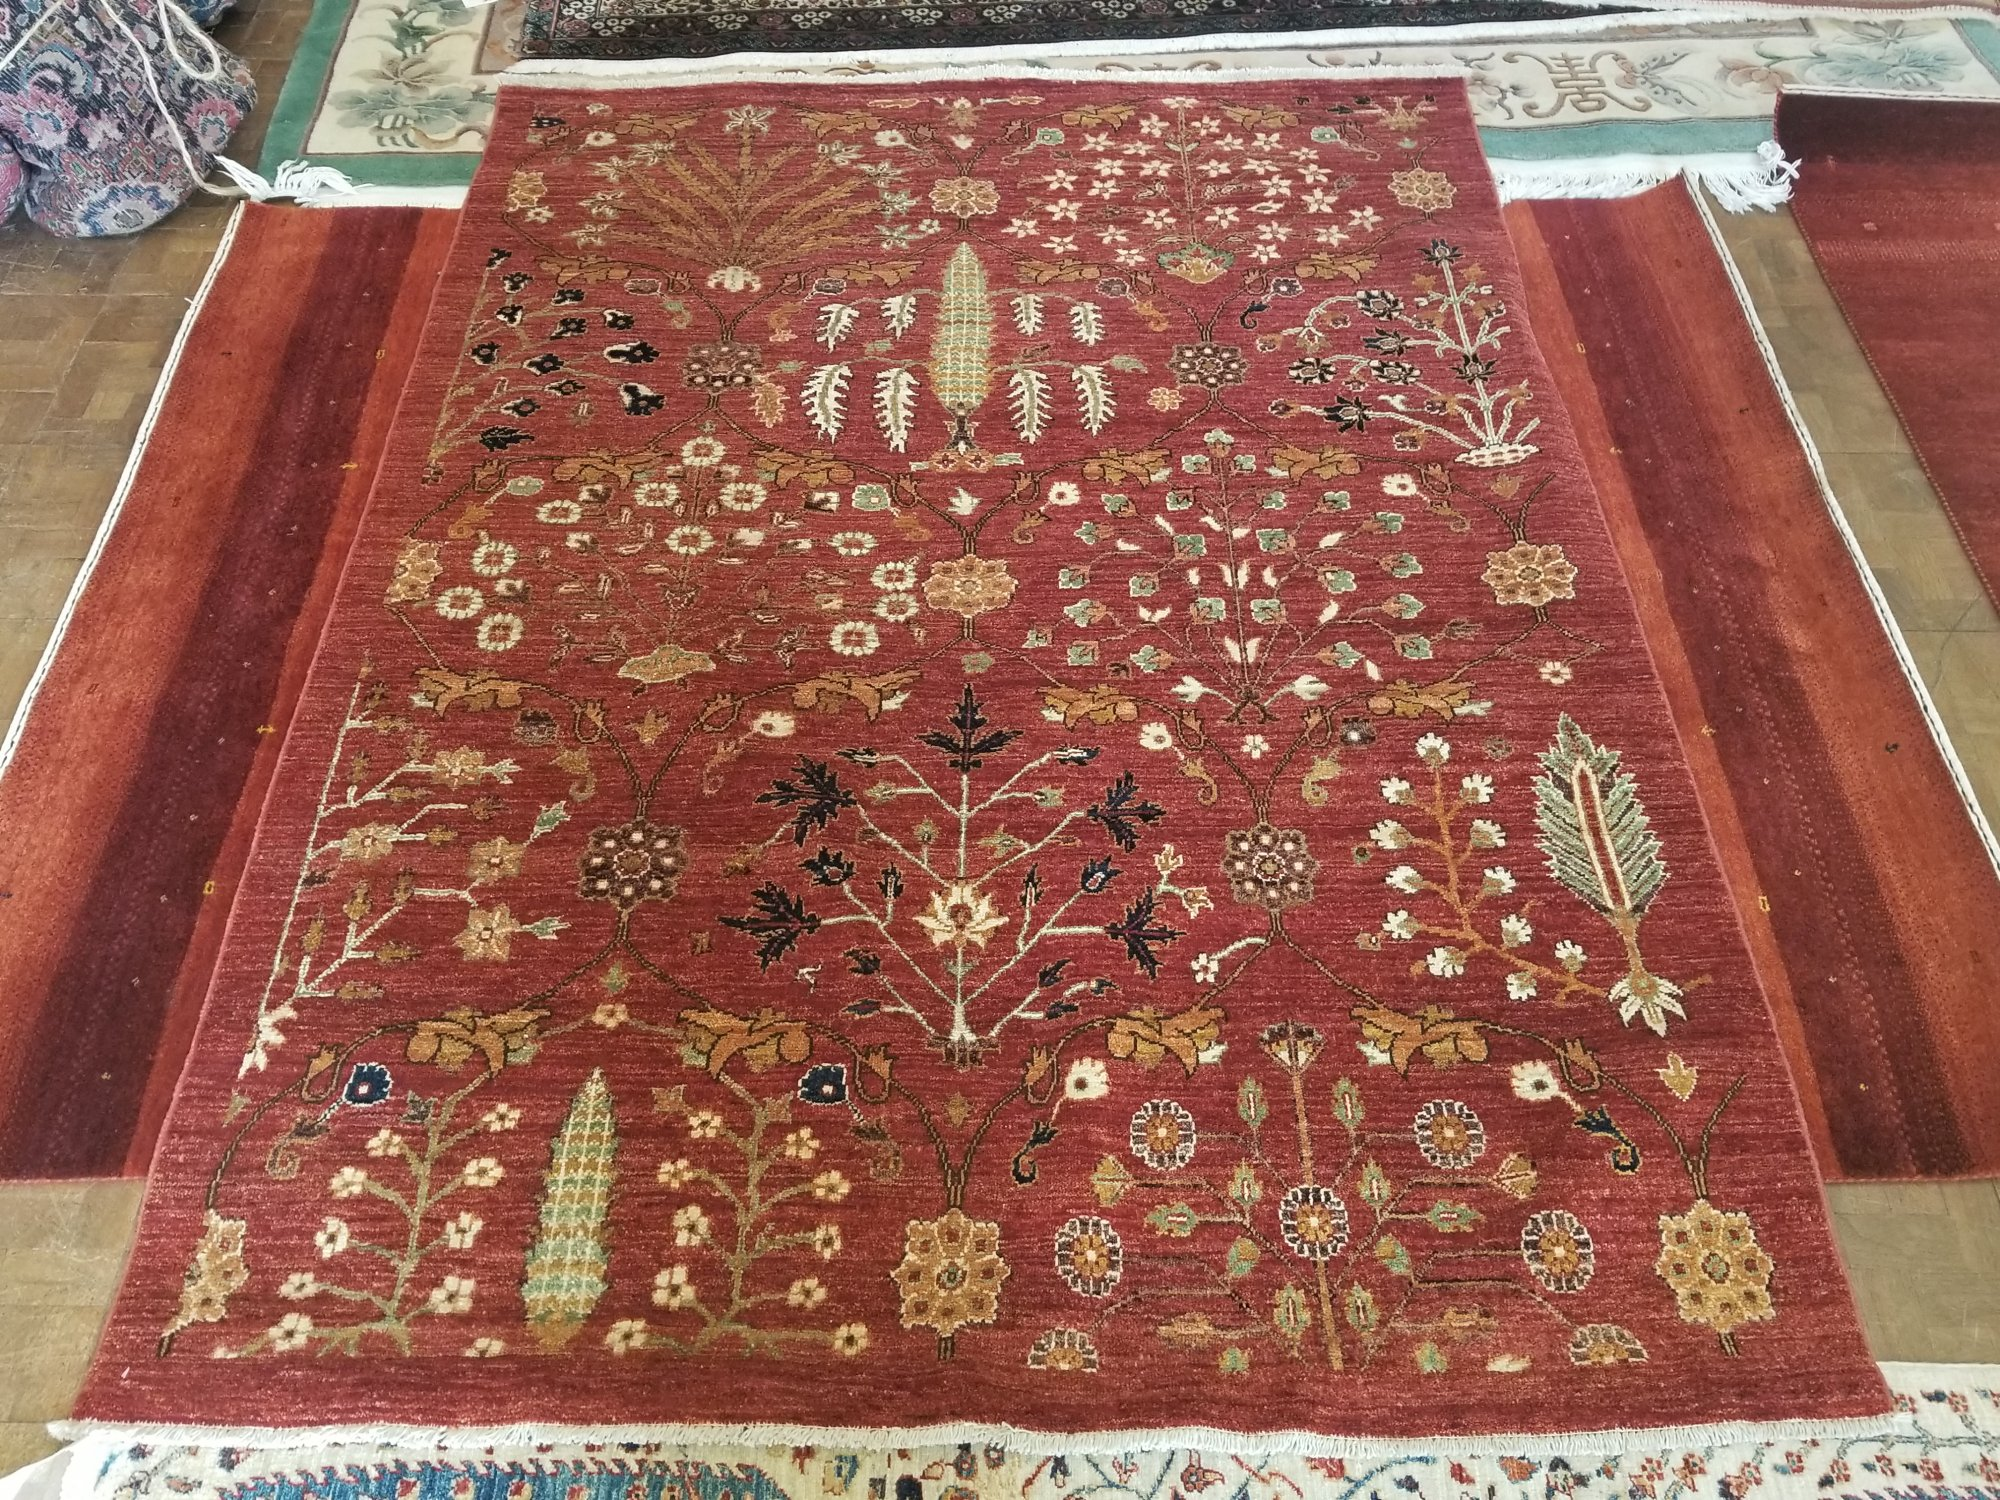 Afghan Kazak 5'1 X 6'7 red field with green, yellow, black and cream accents